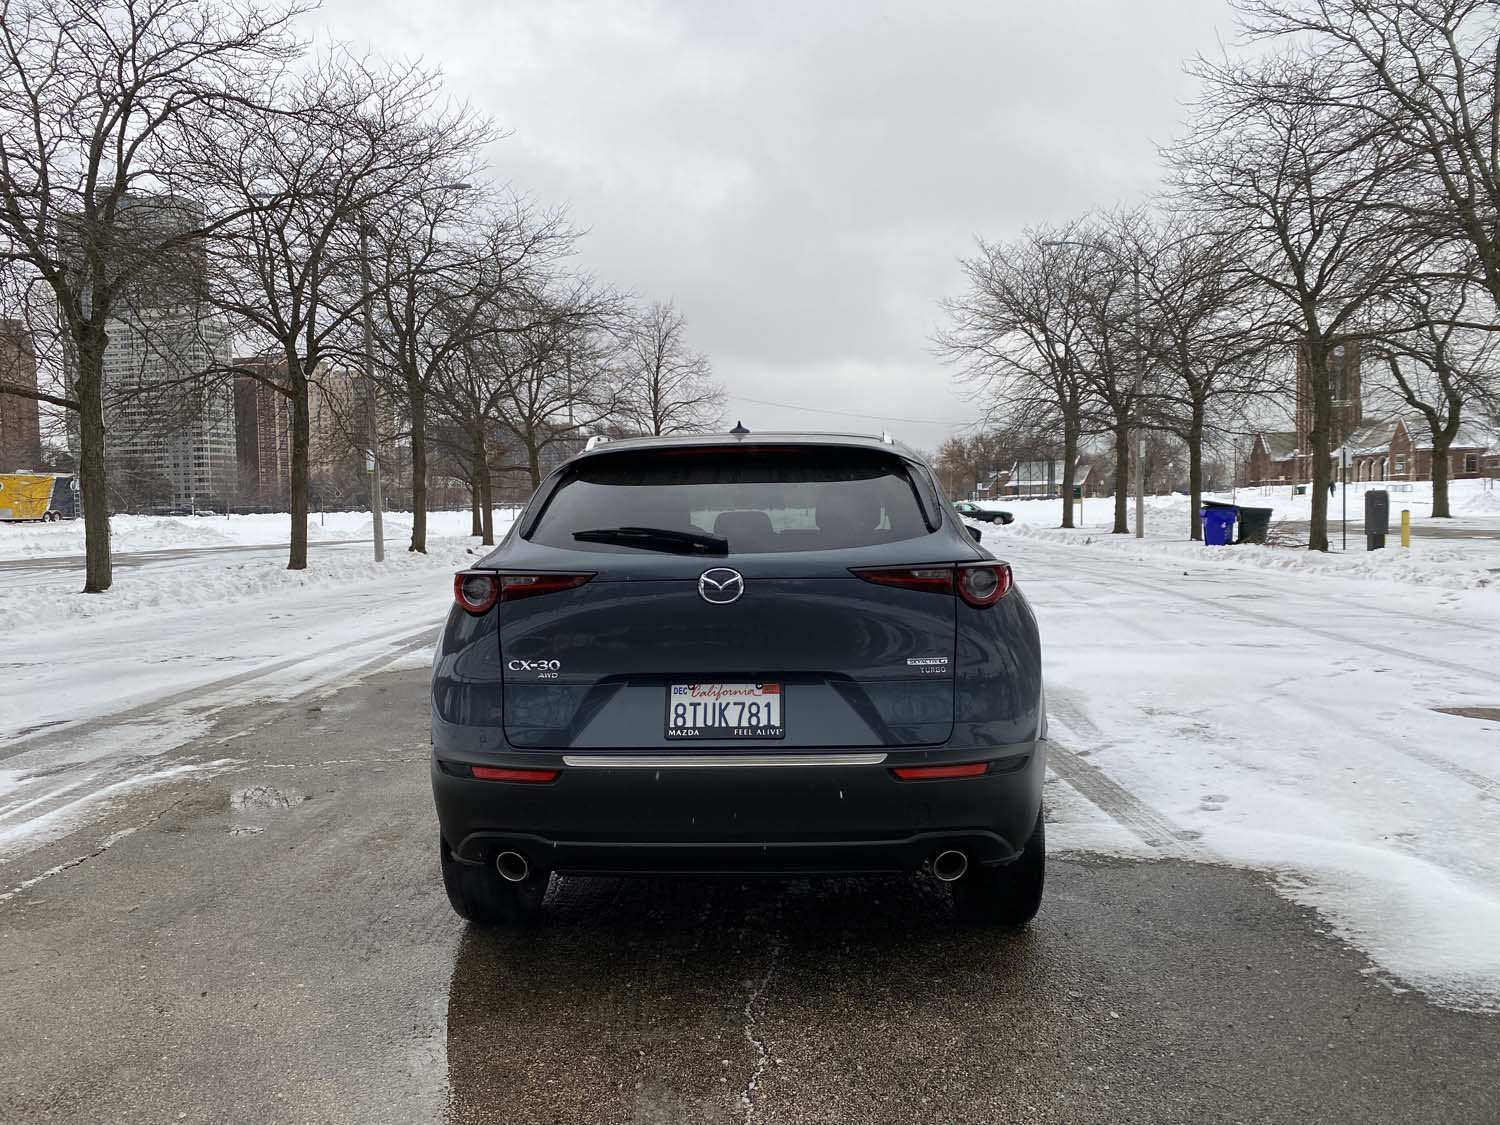 CX-30 2.5 Turbo